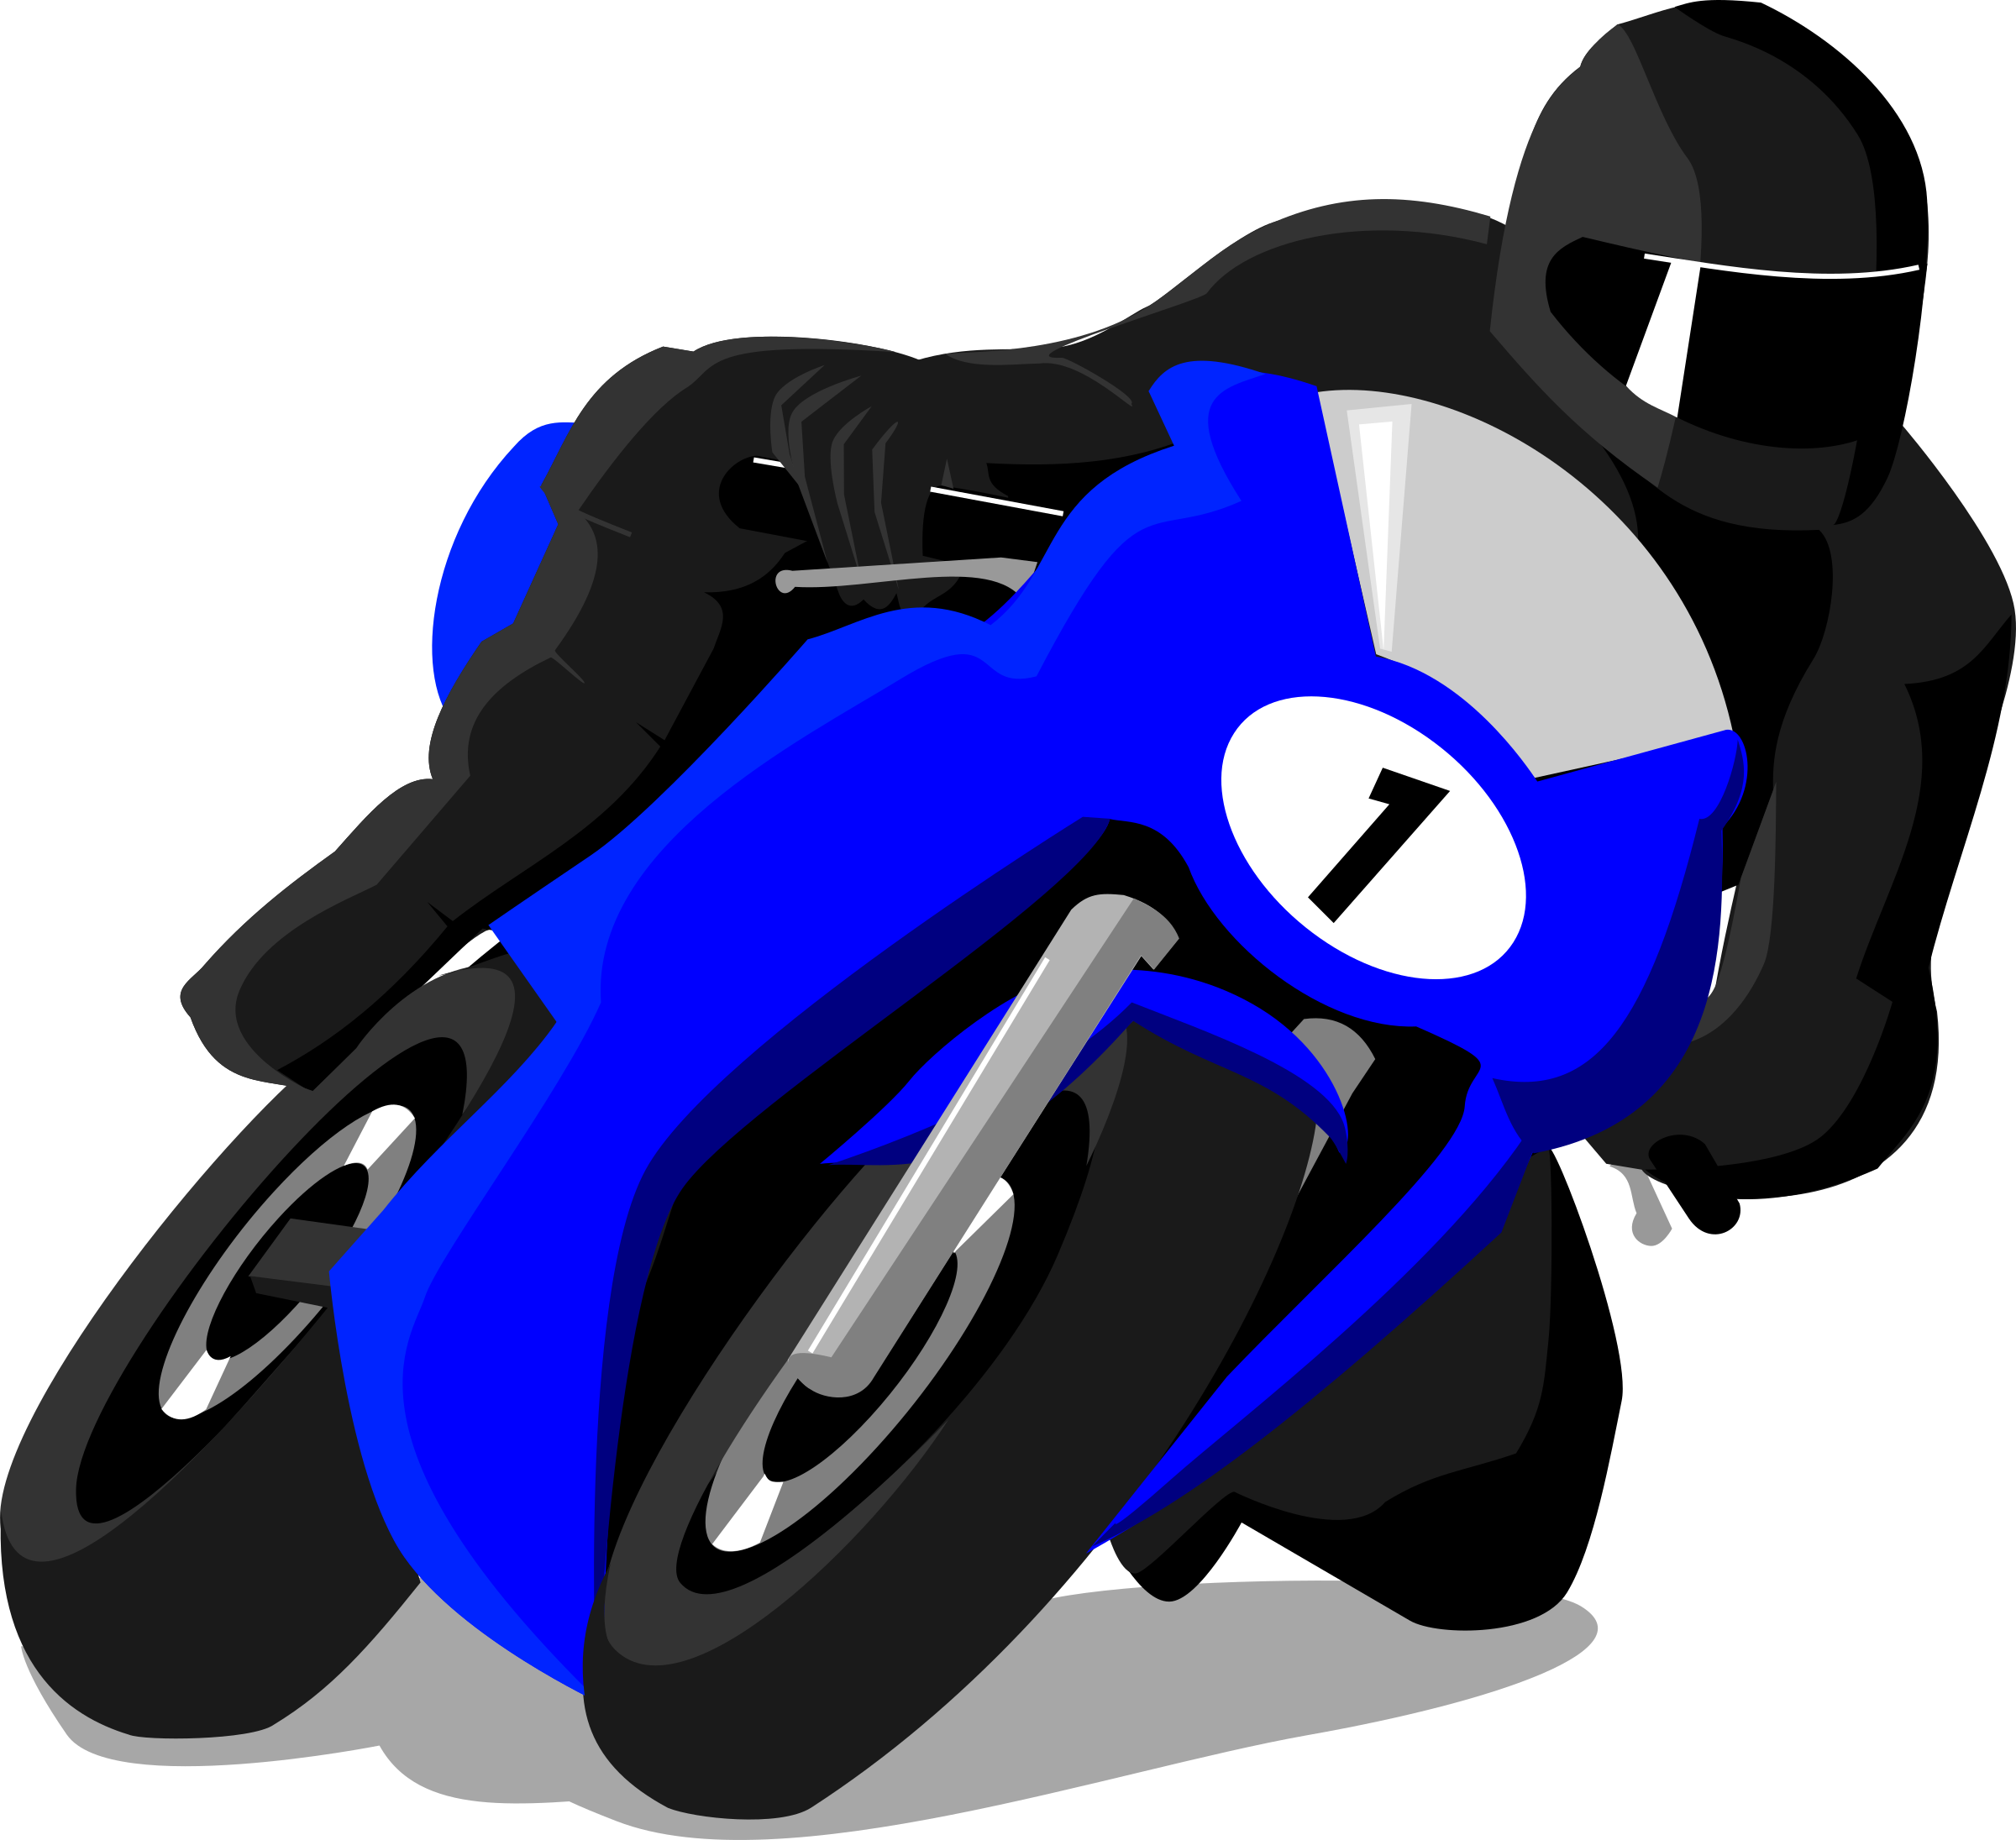 Motorcycle clipart superbike. Sportsbike big image png